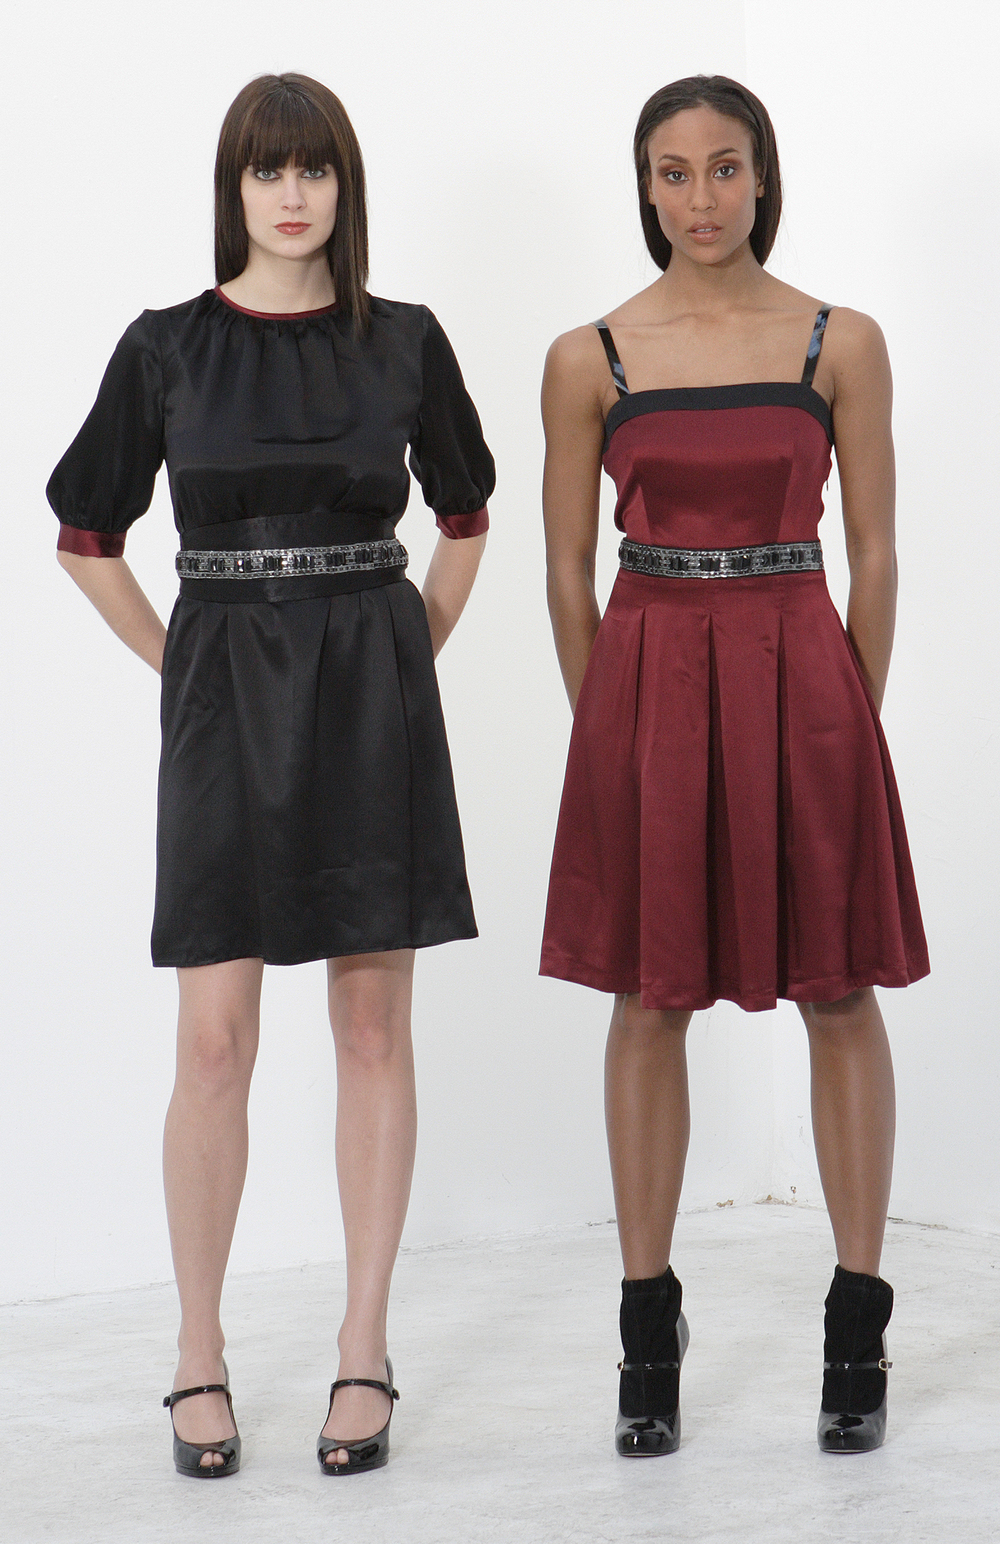 Silk Charmeuse Pleat Cami Sheath Dress w/ Jeweled Obi Belt    Silk Charmeuse Pleat Cami Dress w/ Patent Straps & Jeweled Waist.